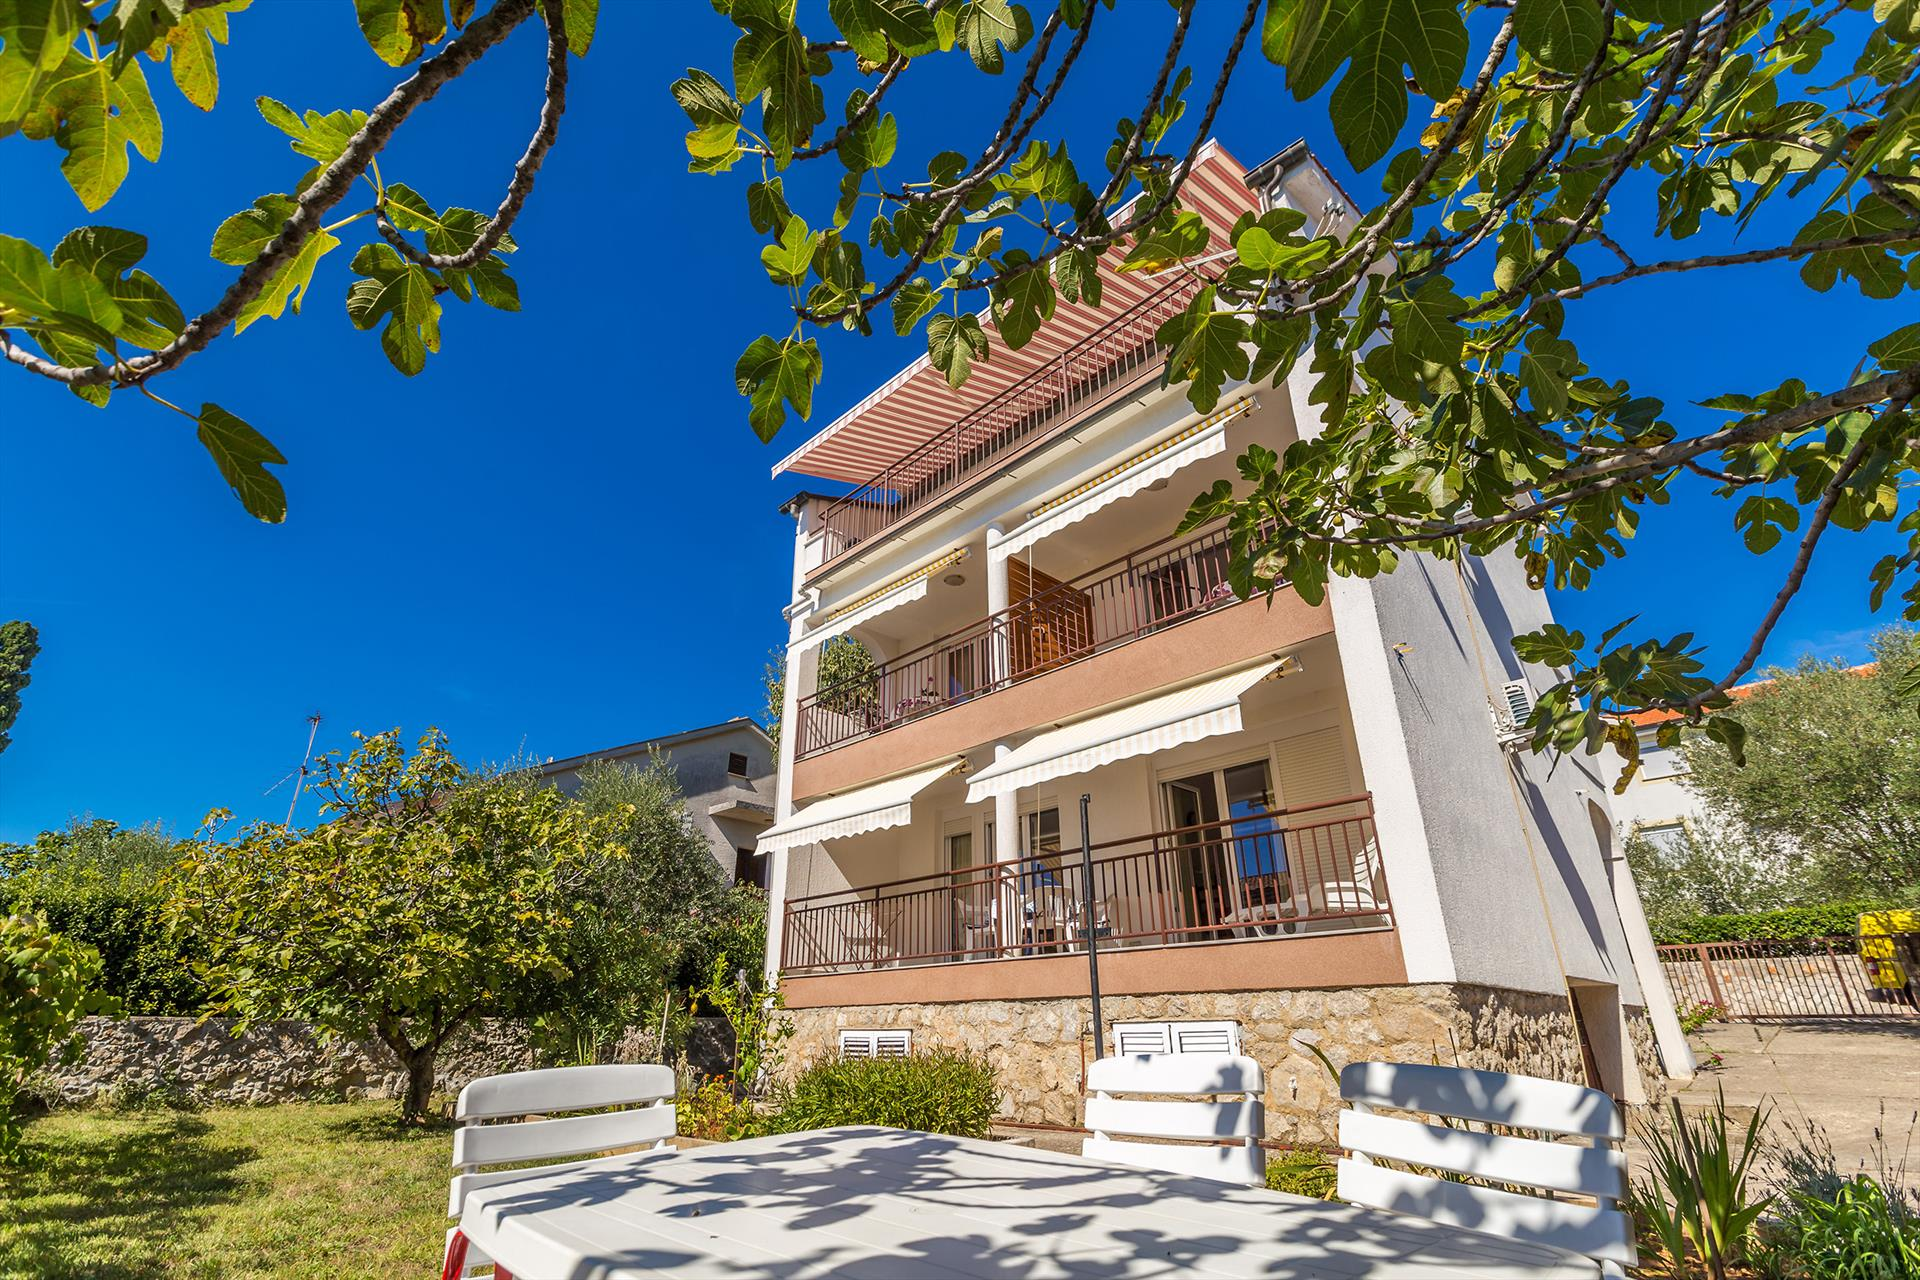 Lovely couple studio - balcony with sea view, near the beach, private parking, Lovely and classic studio in Krk, Island Krk, Croatia for 2 persons...